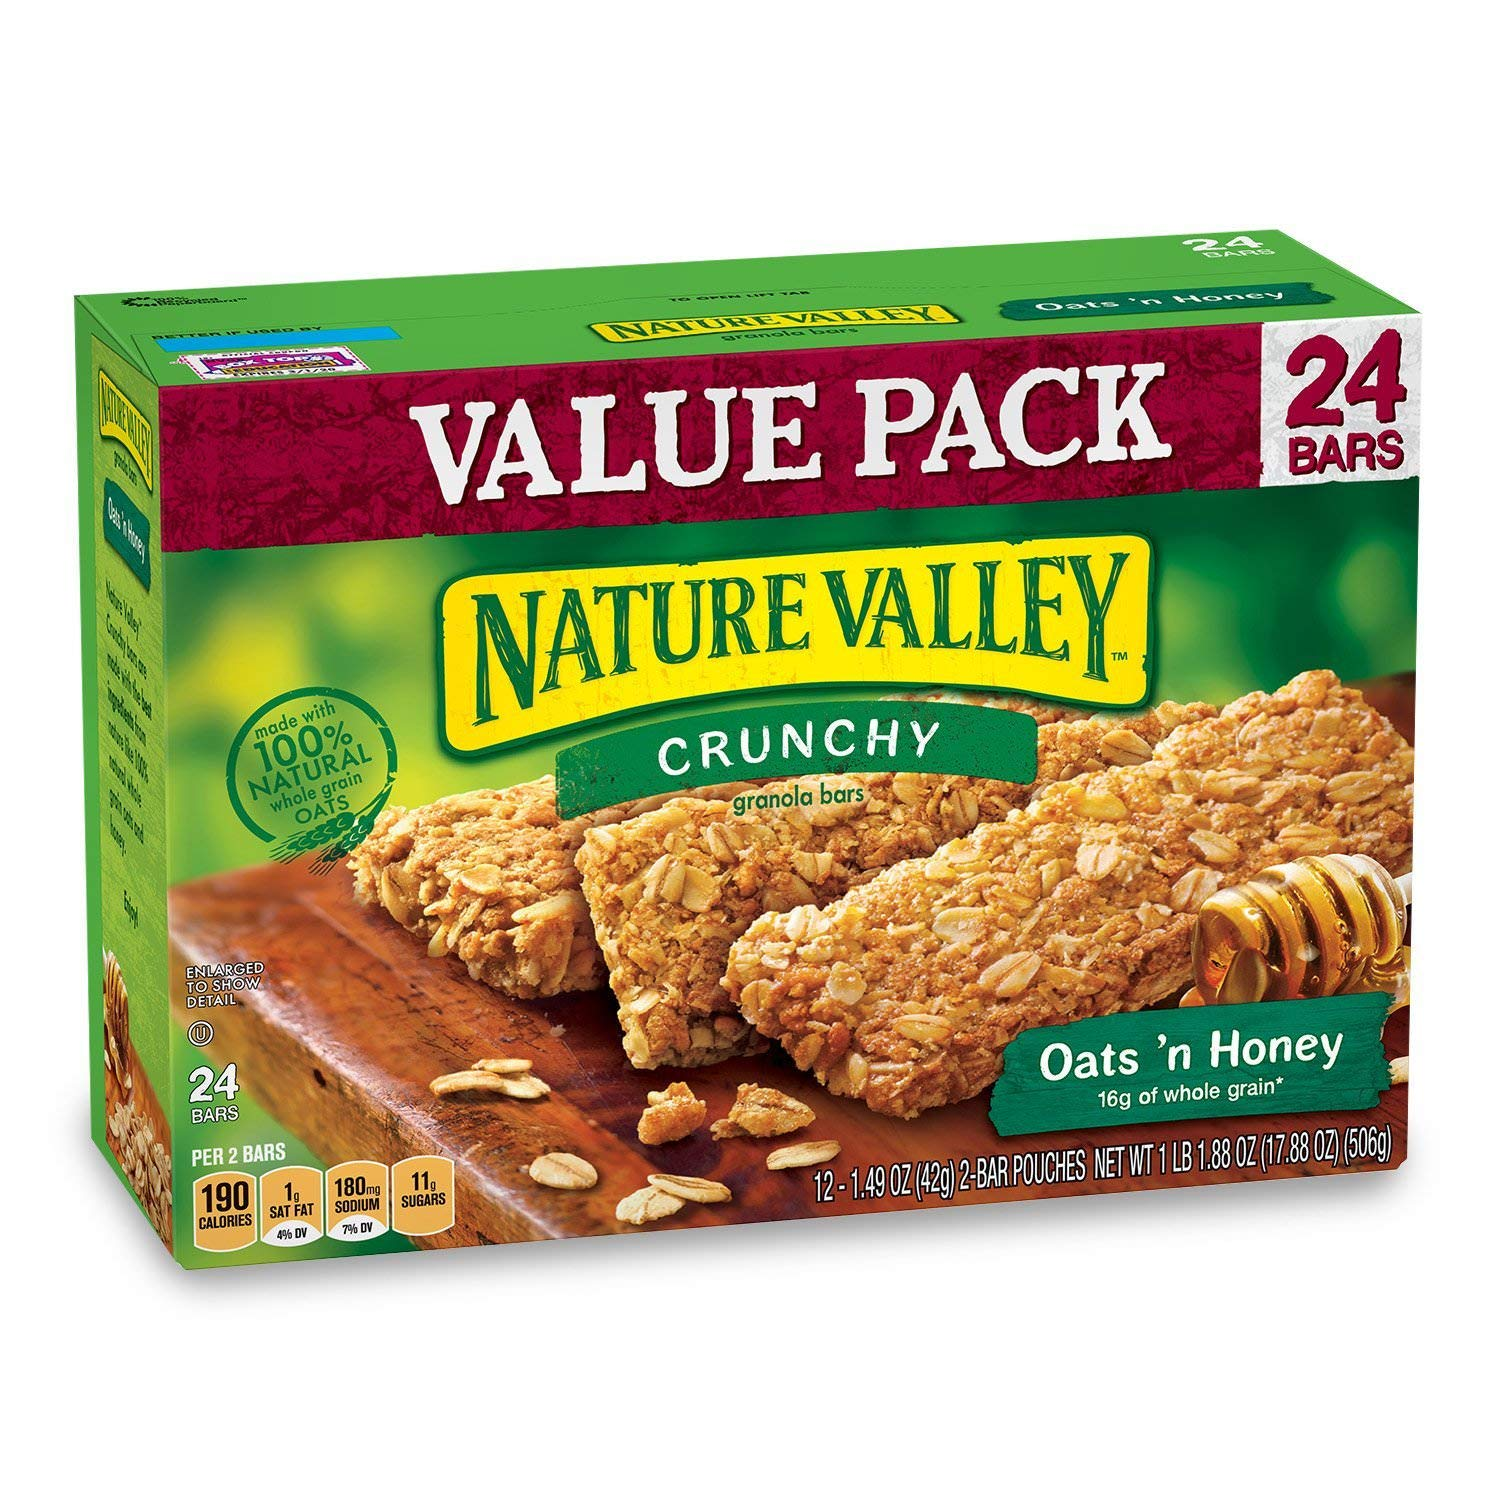 Nature Valley Granola Bars, Crunchy, Oats and Honey, 1.49 Ounce, 12 Bars (24 Boxes) by Nature Valley (Image #1)